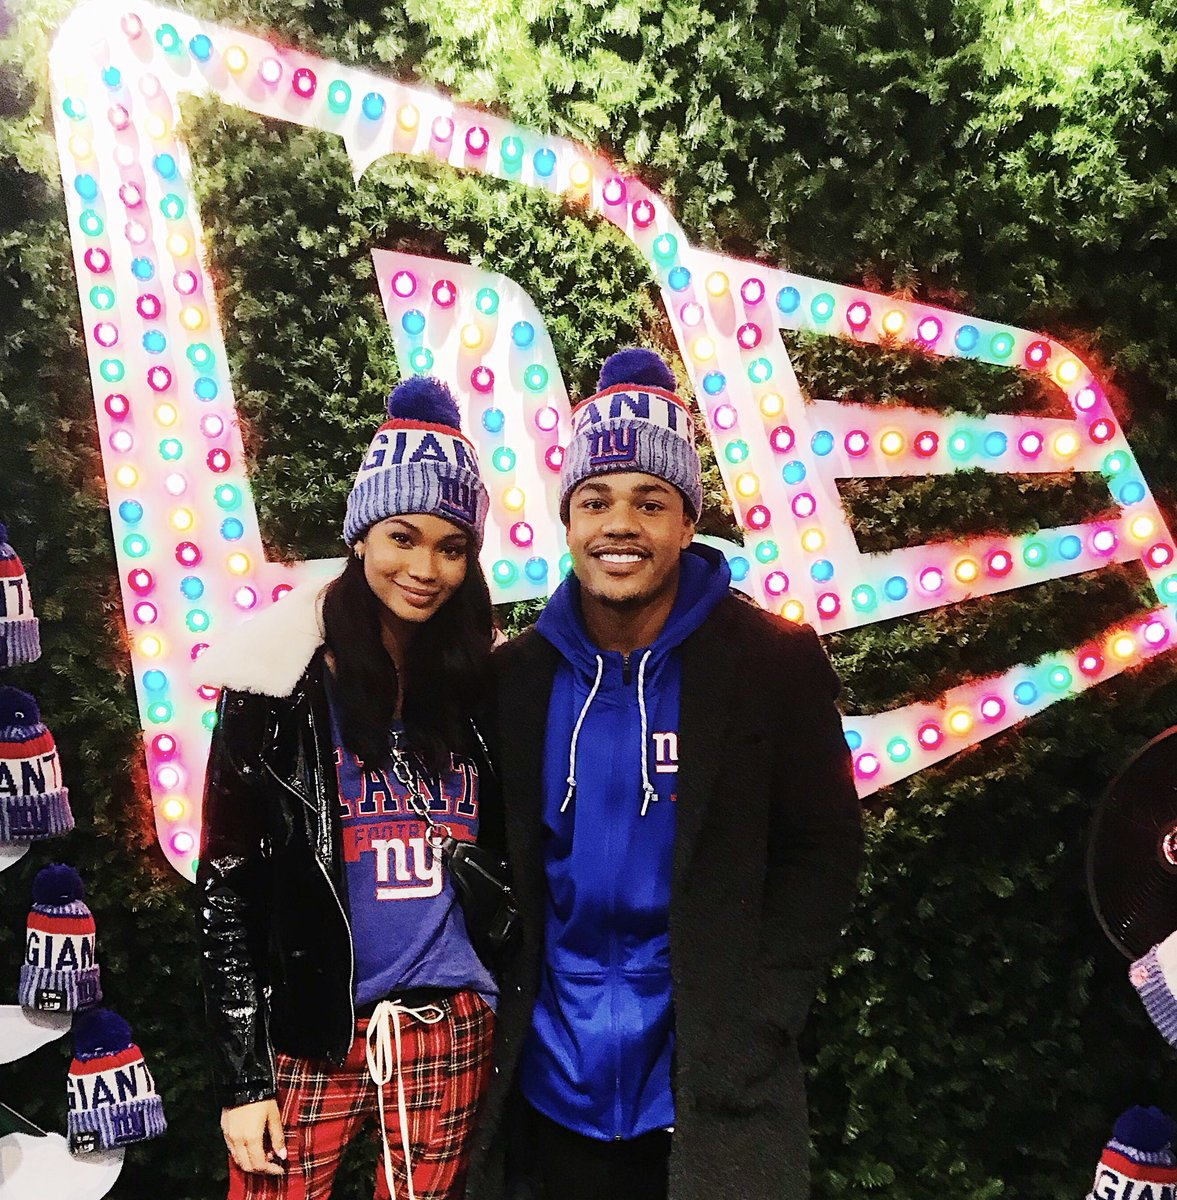 Thanks to the @neweracap fam for a great event @lids @macys Herald Square! #coldweatherstyle #neweracap https://t.co/Mkb4Uizgj1